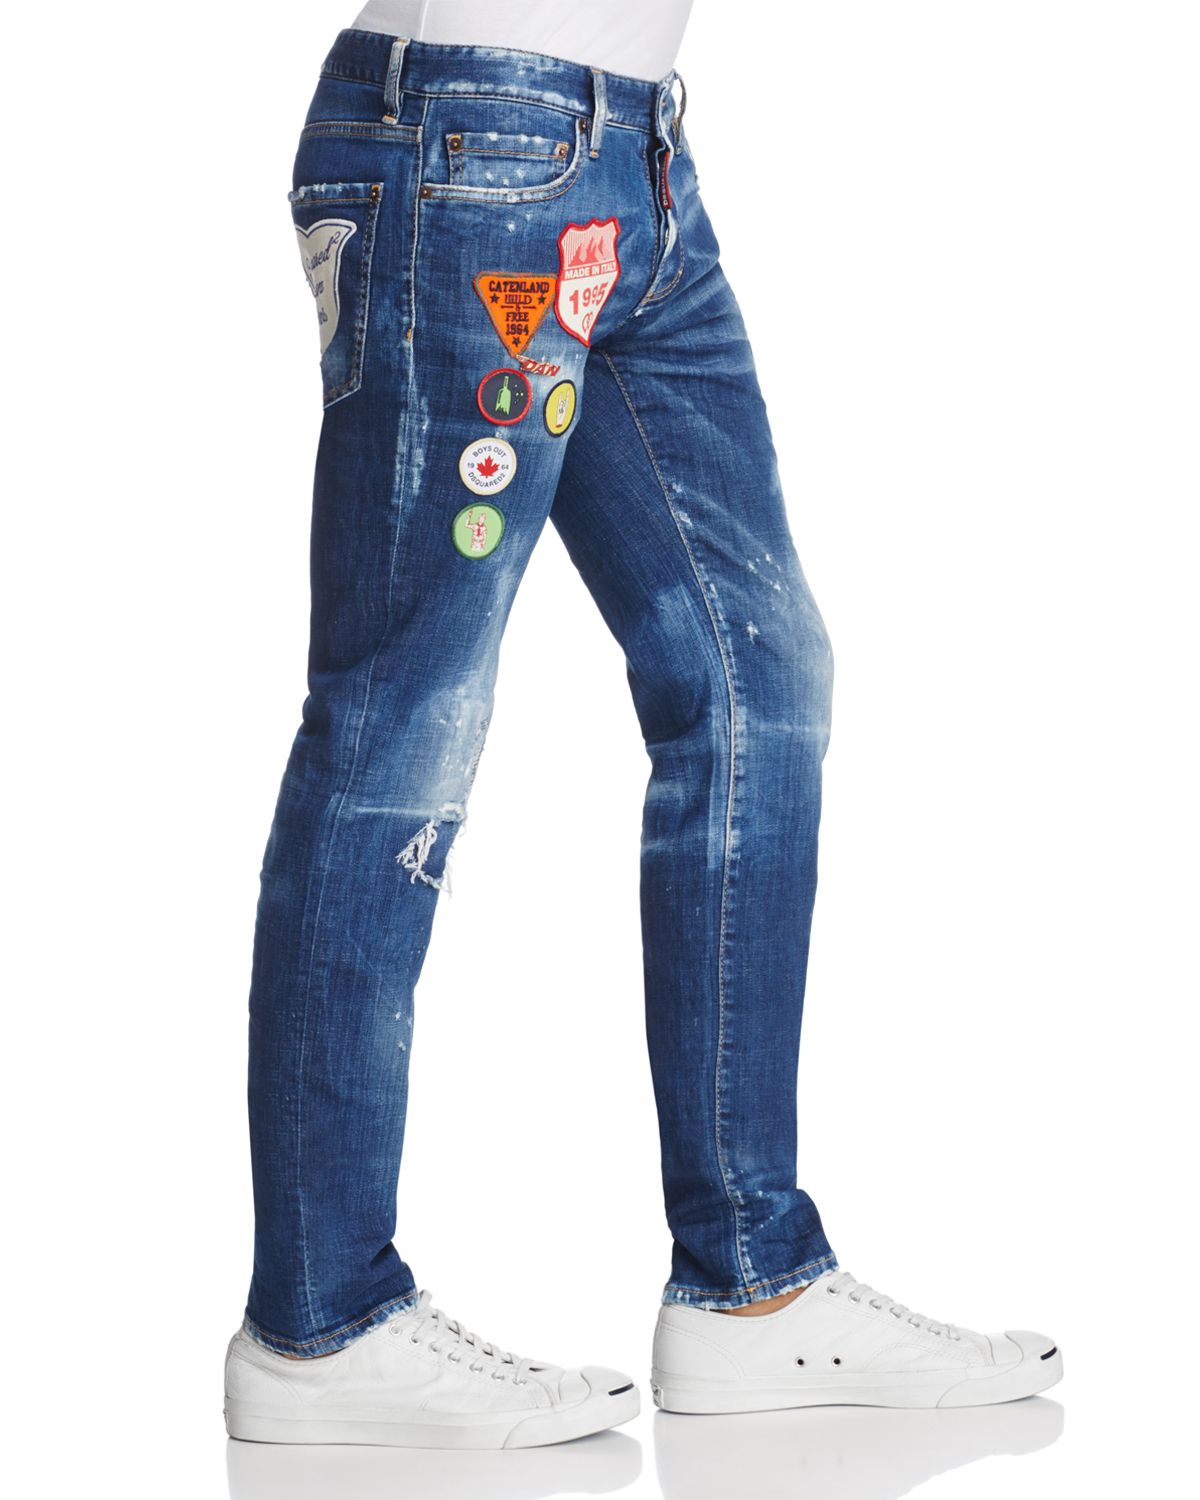 Patched Slim Fit Jeans In Stormy Wash by Dsquared2